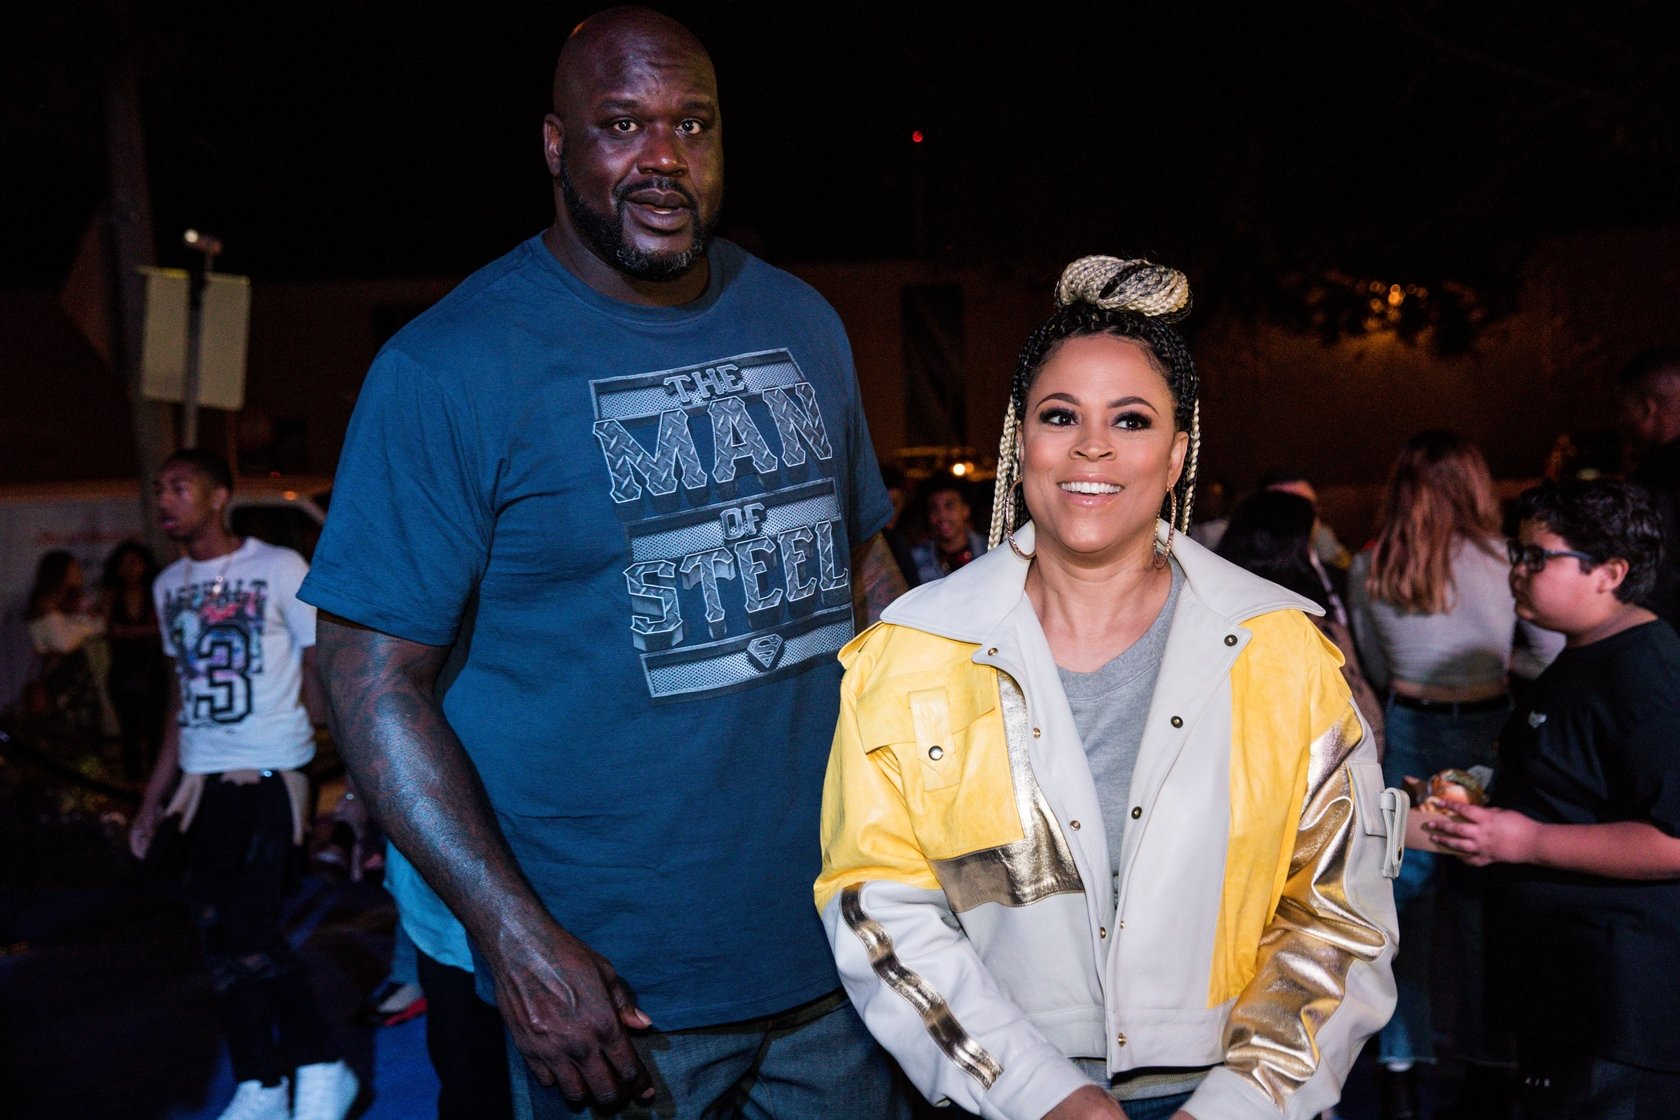 Shaunie O'Neal and Shaquille O'Neal celebrate Shareef O'Neal's 18th birthday party. Jan. 13, 2018. | Photo: GettyImages/Global Images of Ukraine